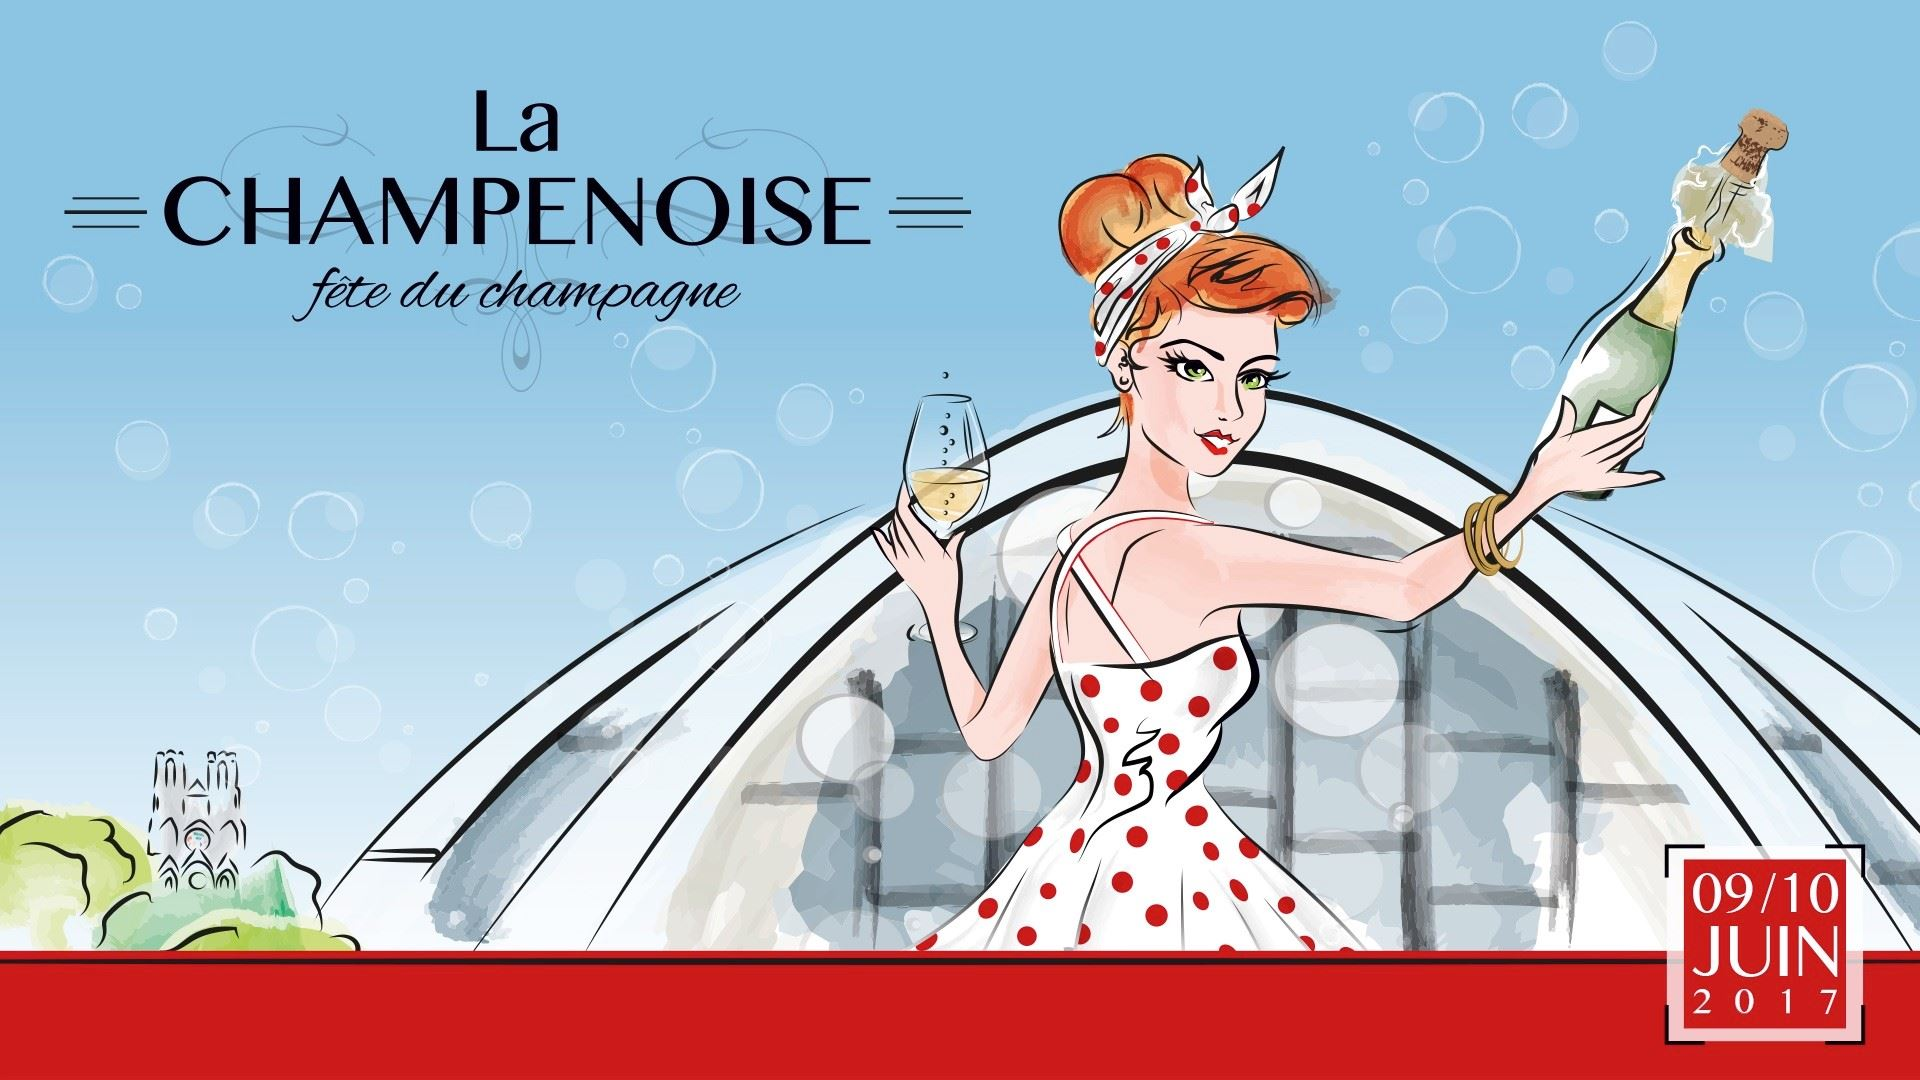 La Champenoise - Day access ticket